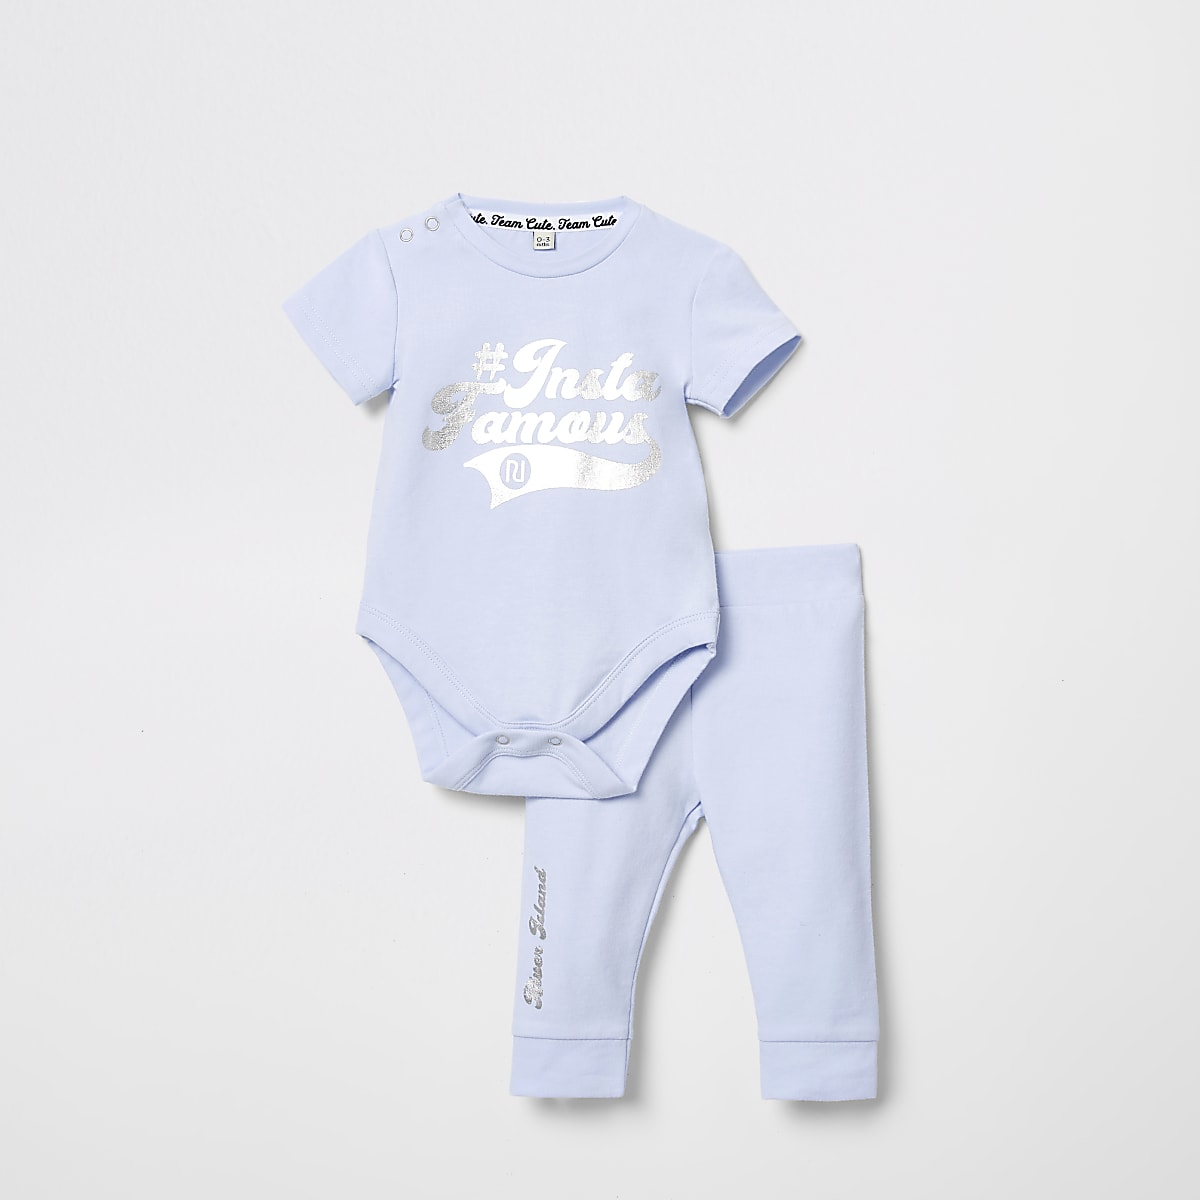 Baby blue #Instafamous babygrow outfit